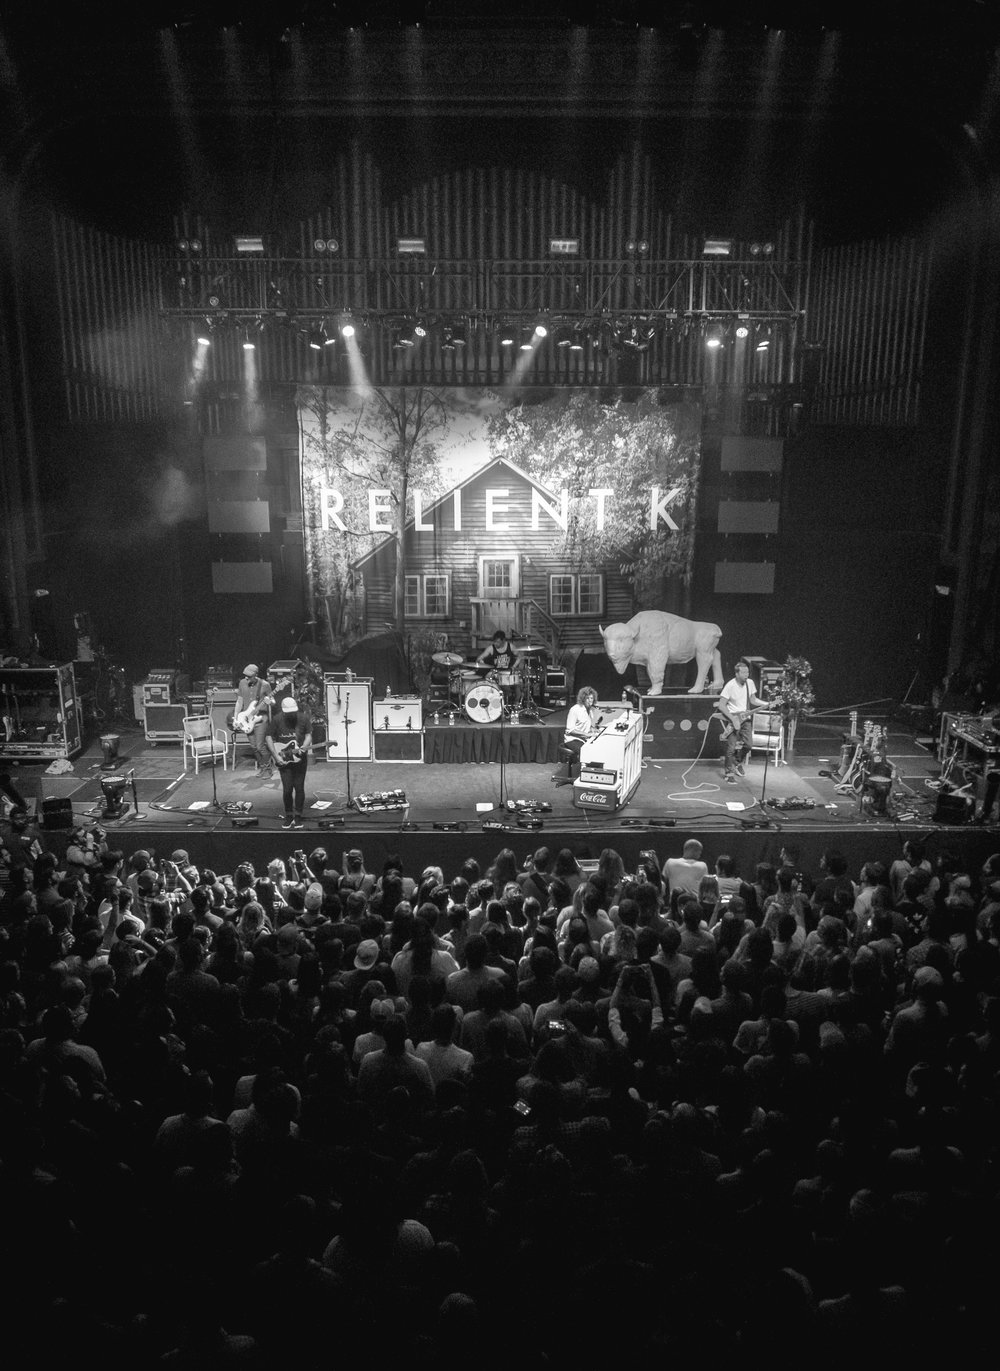 R E L I E N T K  – Tour photography and set design for the Looking for America Tour with Switchfoot.